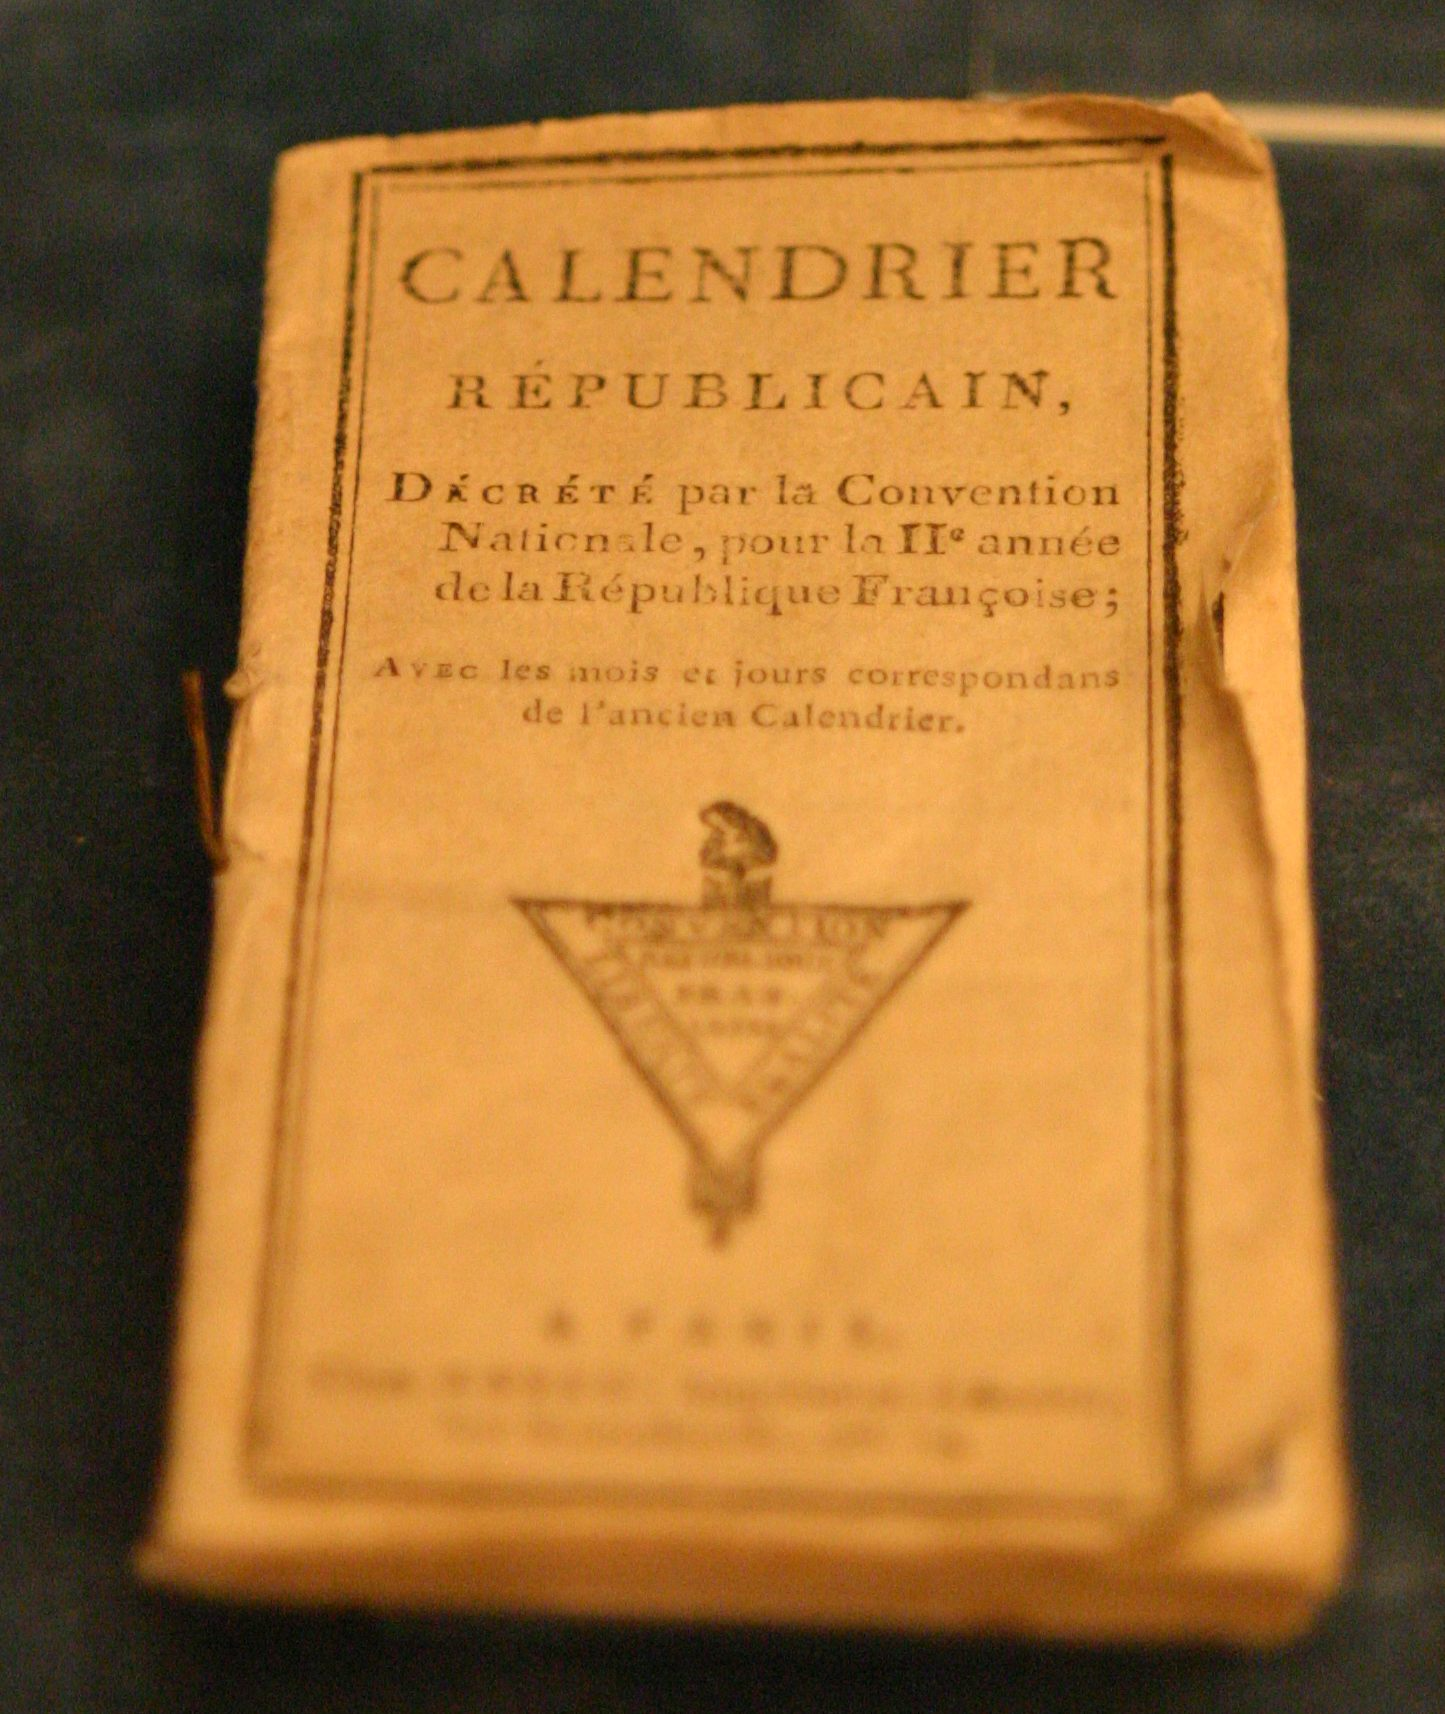 The French Republican Calendar